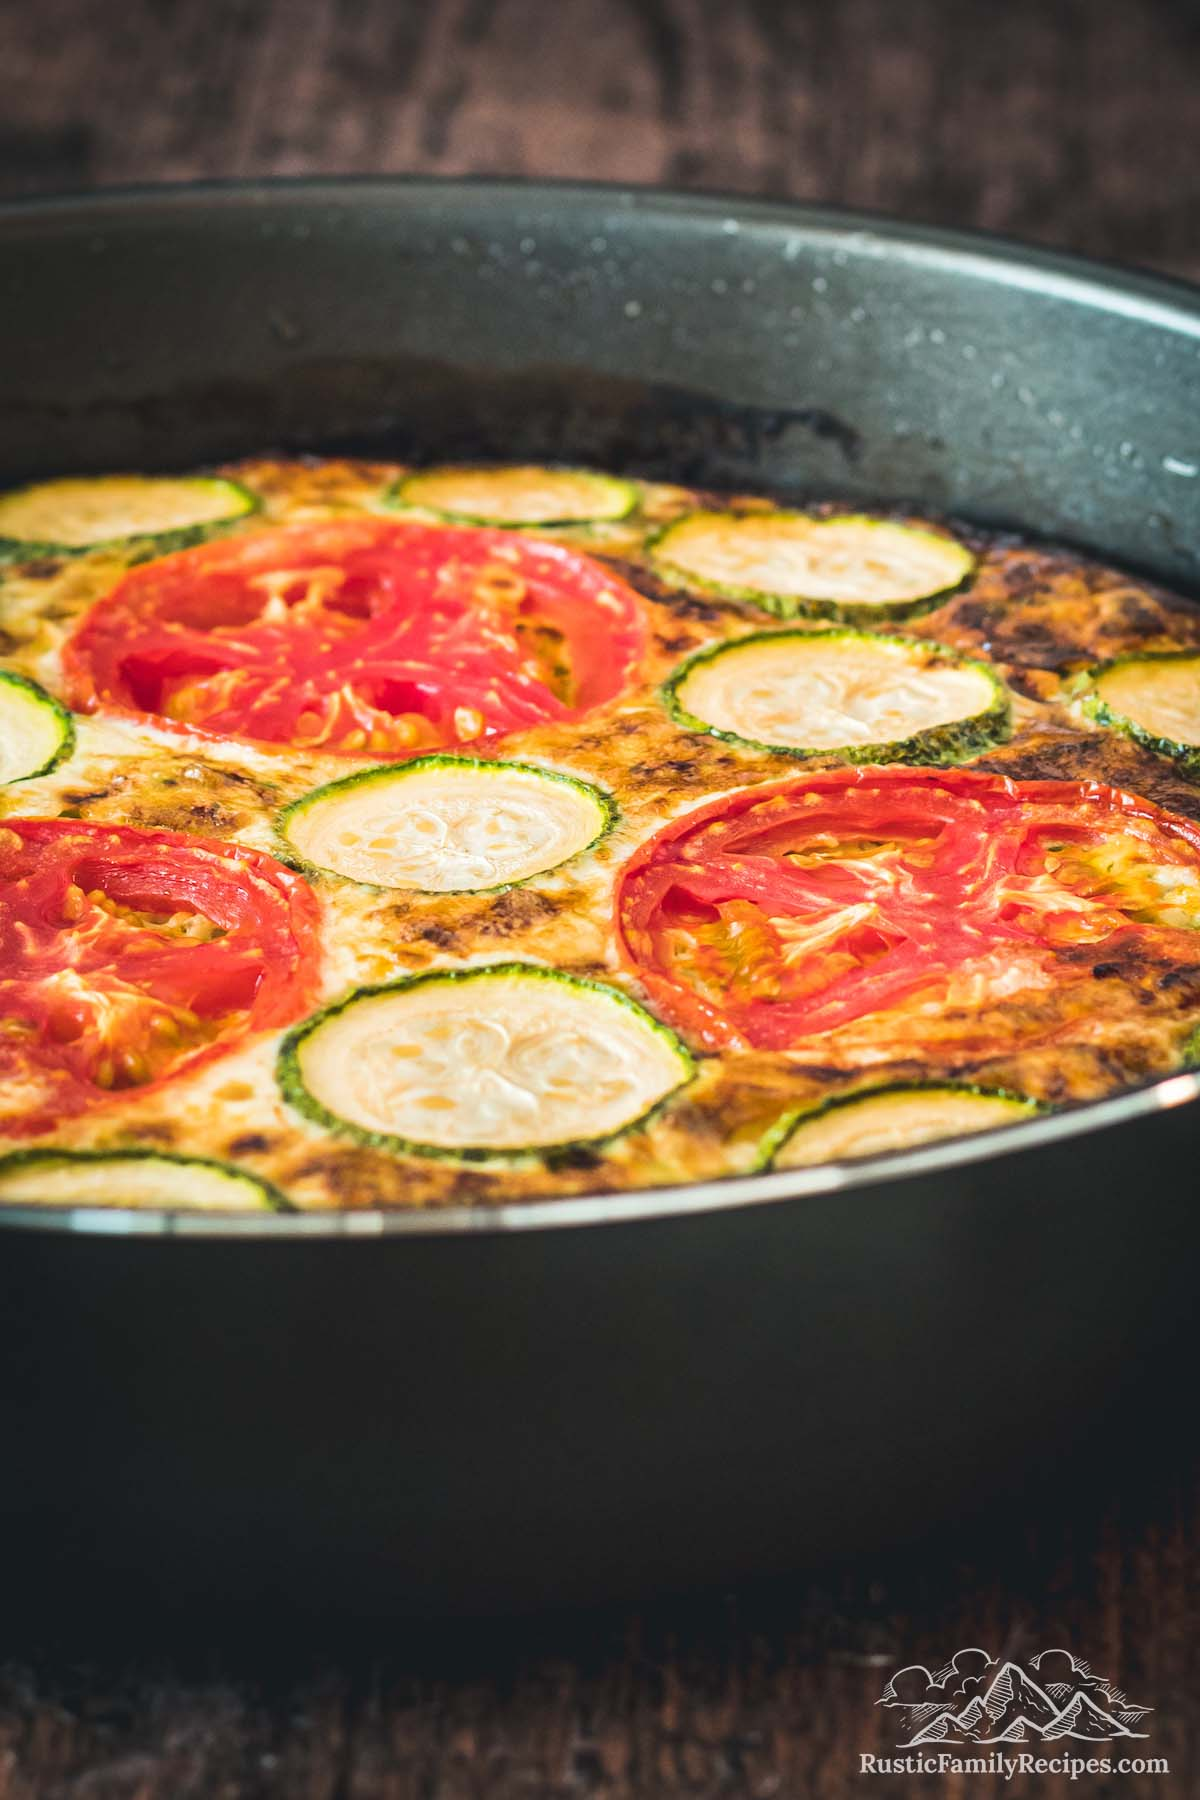 Side view of baked crustless zucchini quiche in a pan